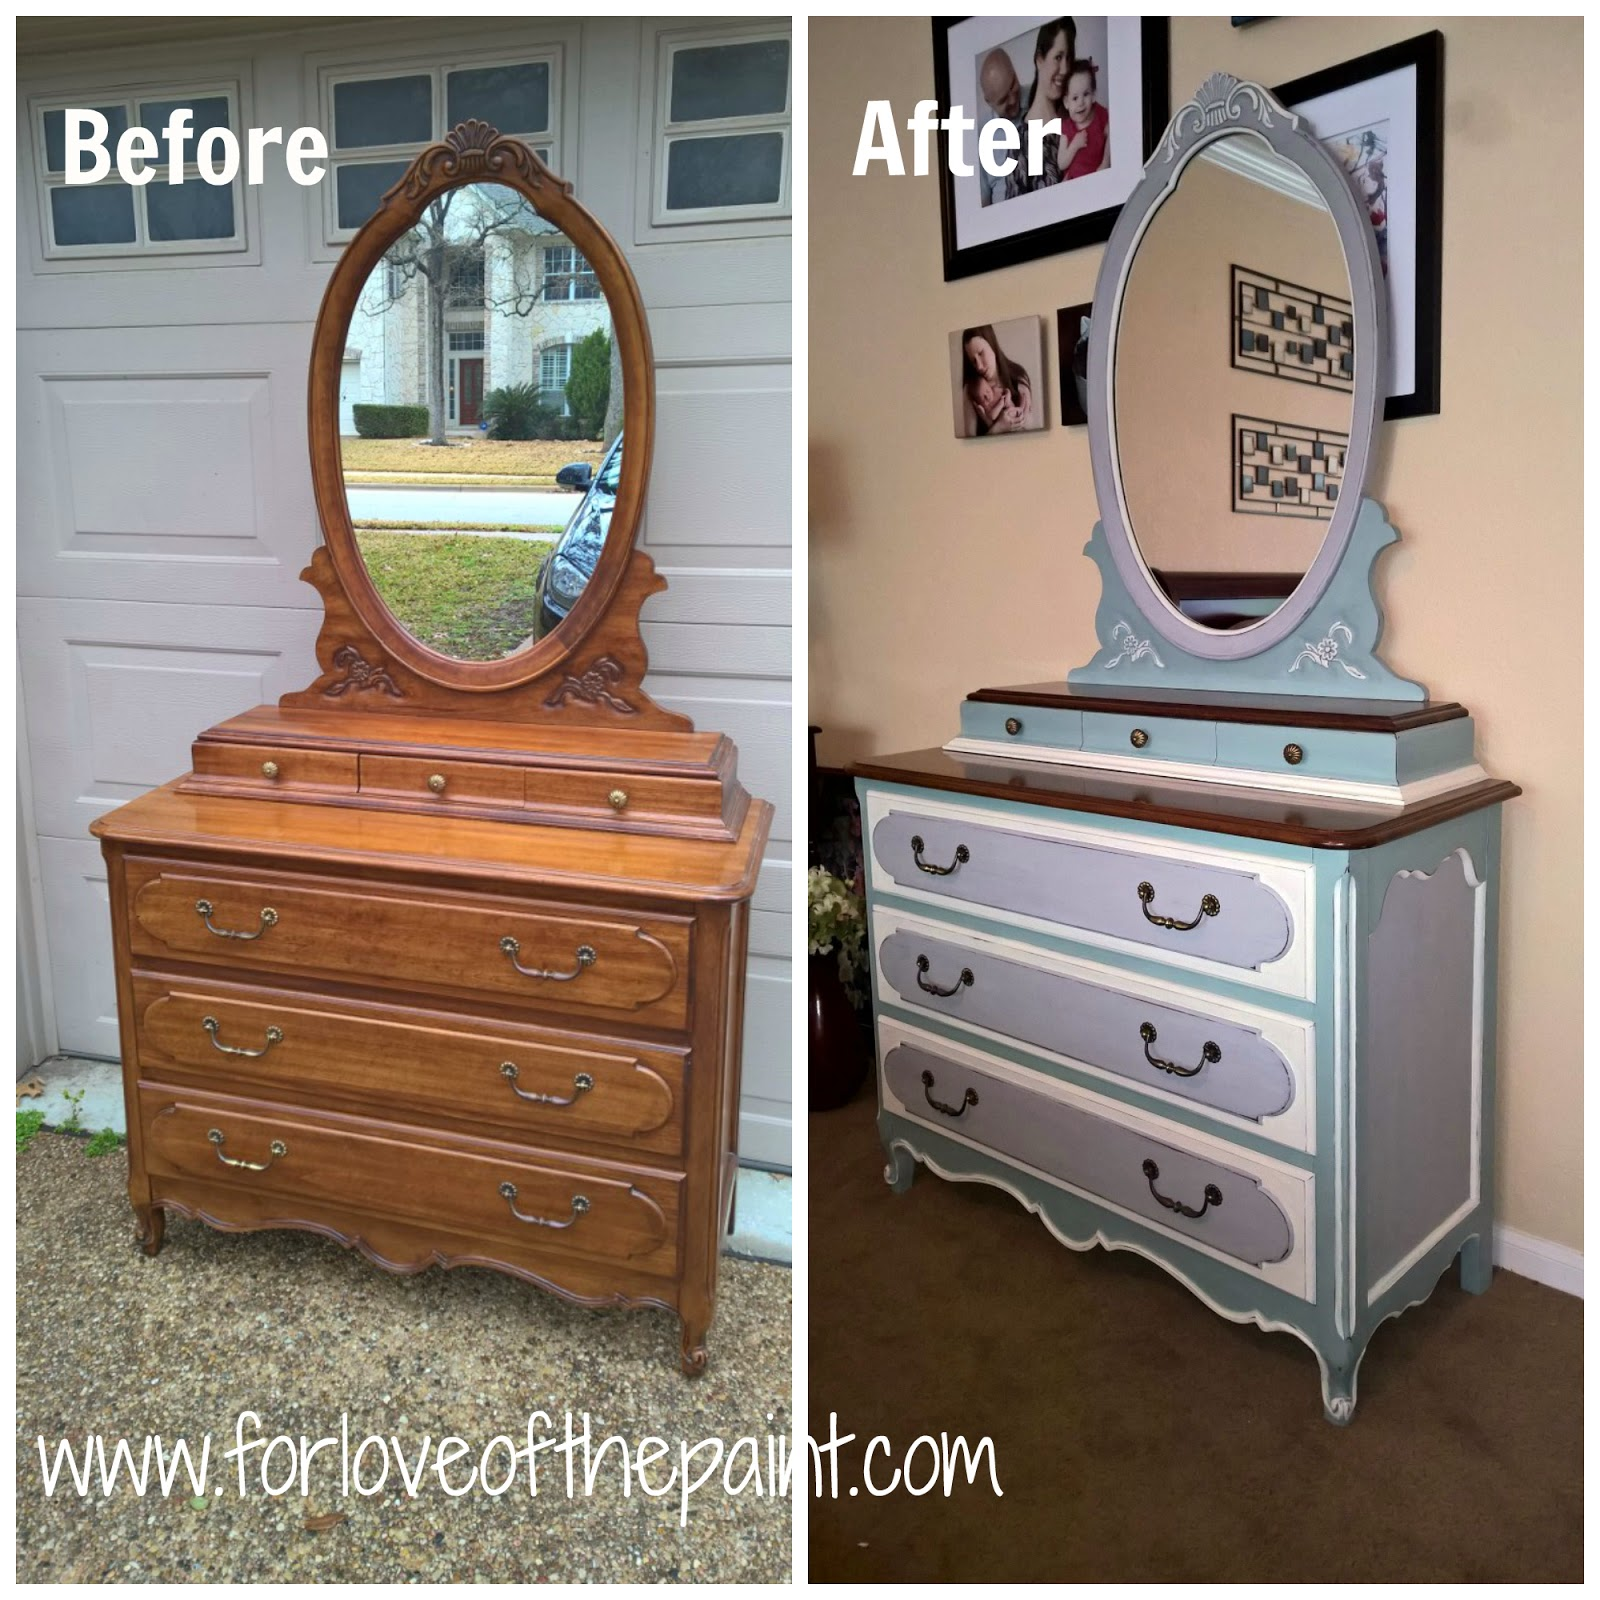 Paris vanity mirror - I Put Paris Grey Over The Whole Shebang Then Dry Brushed Duck Egg Over The Body And Used Old White For The Trim I Distressed The High Points And Around